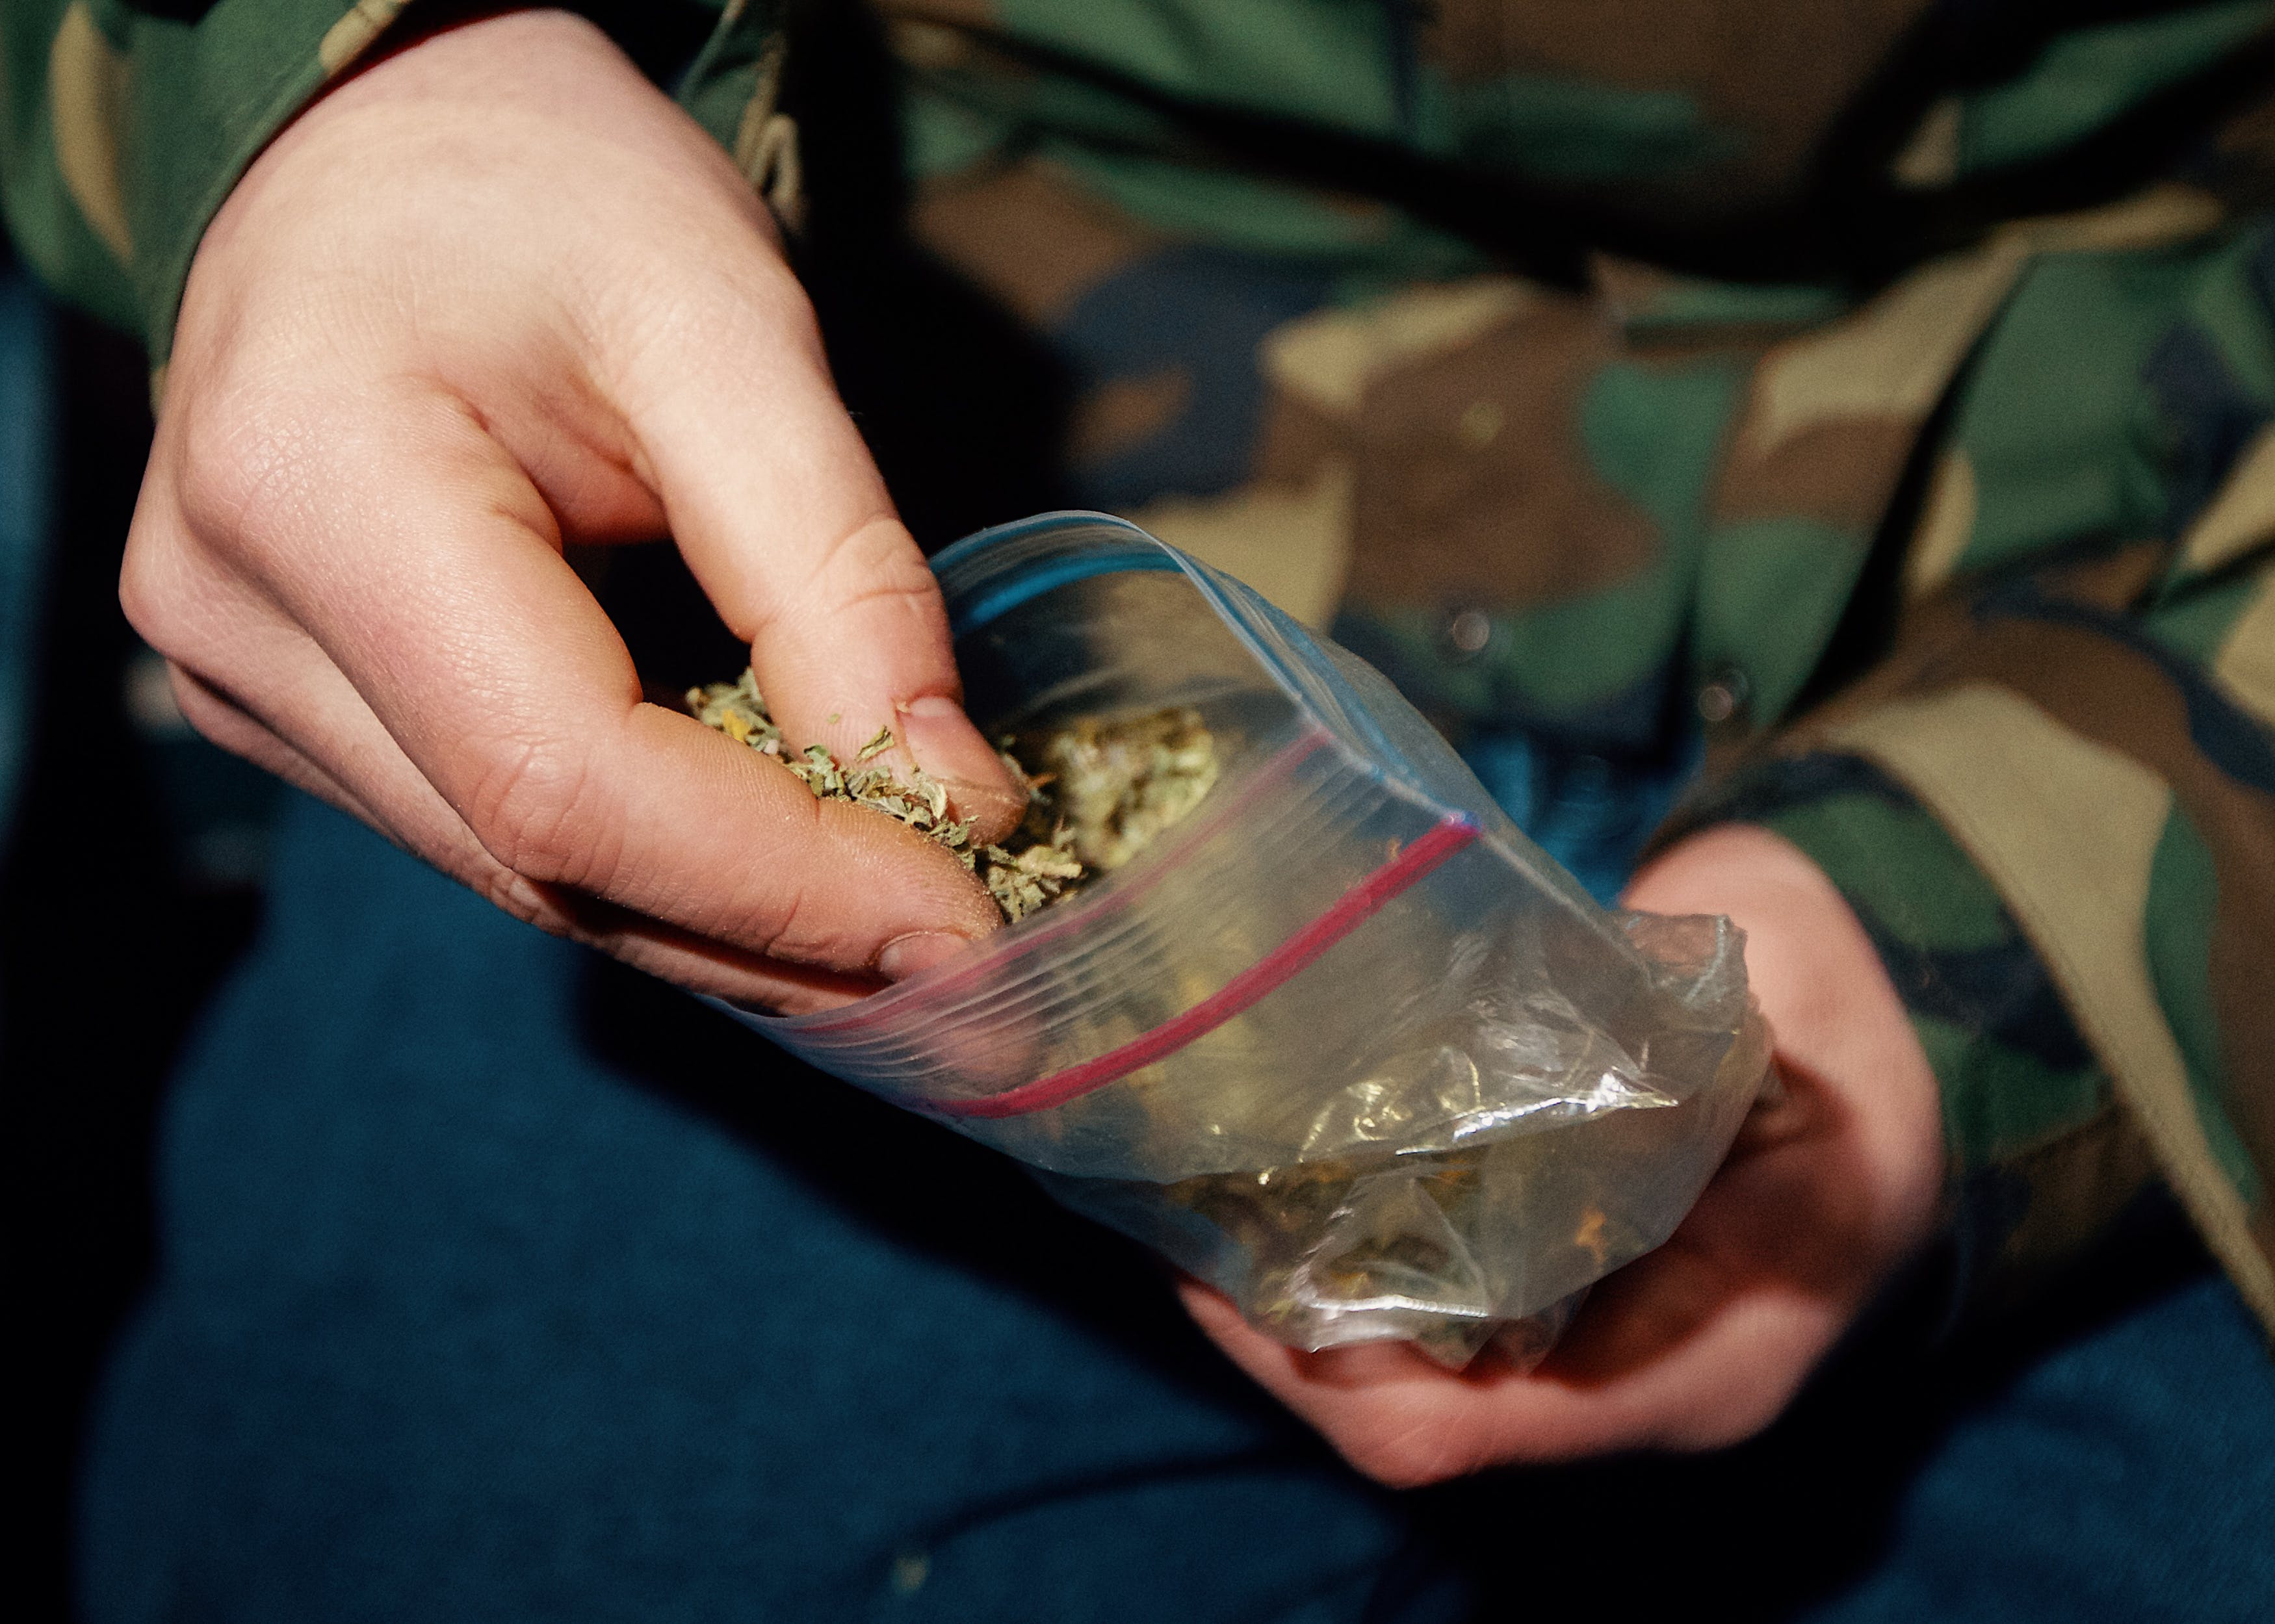 In this article, we explore laced weed. Here, a man pulls nugs out of a ziplock